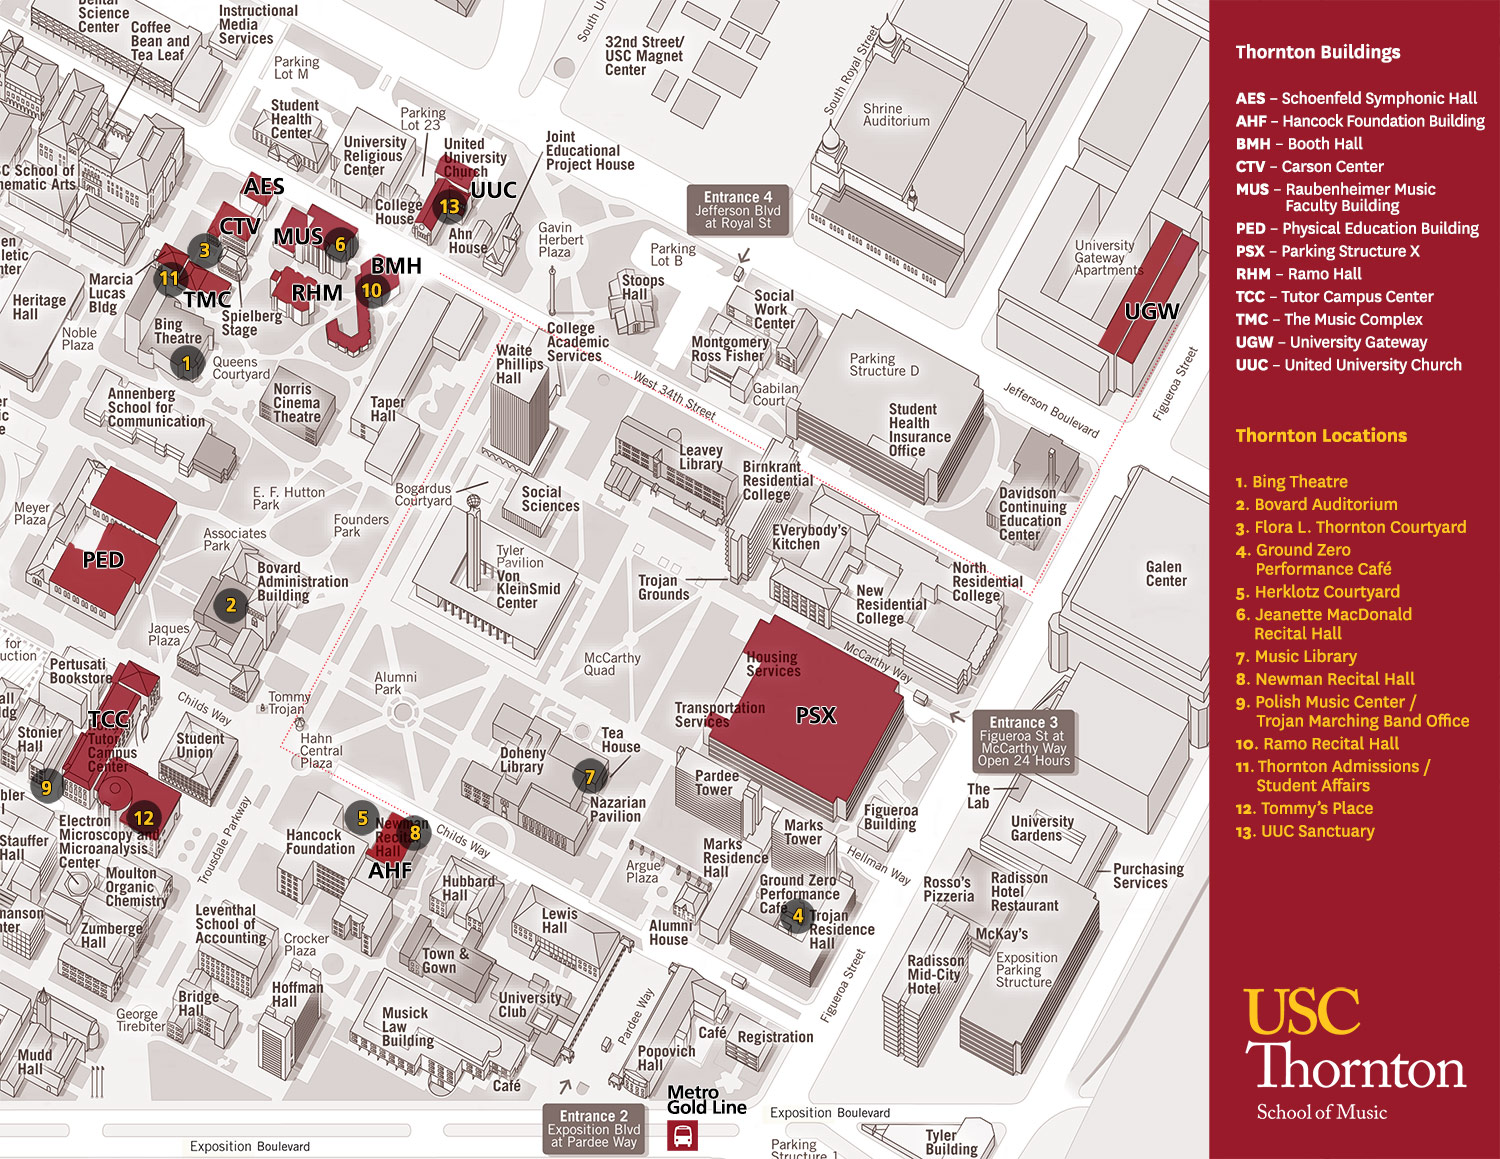 Usc Parking Map Visit Thornton | USC Thornton School of Music